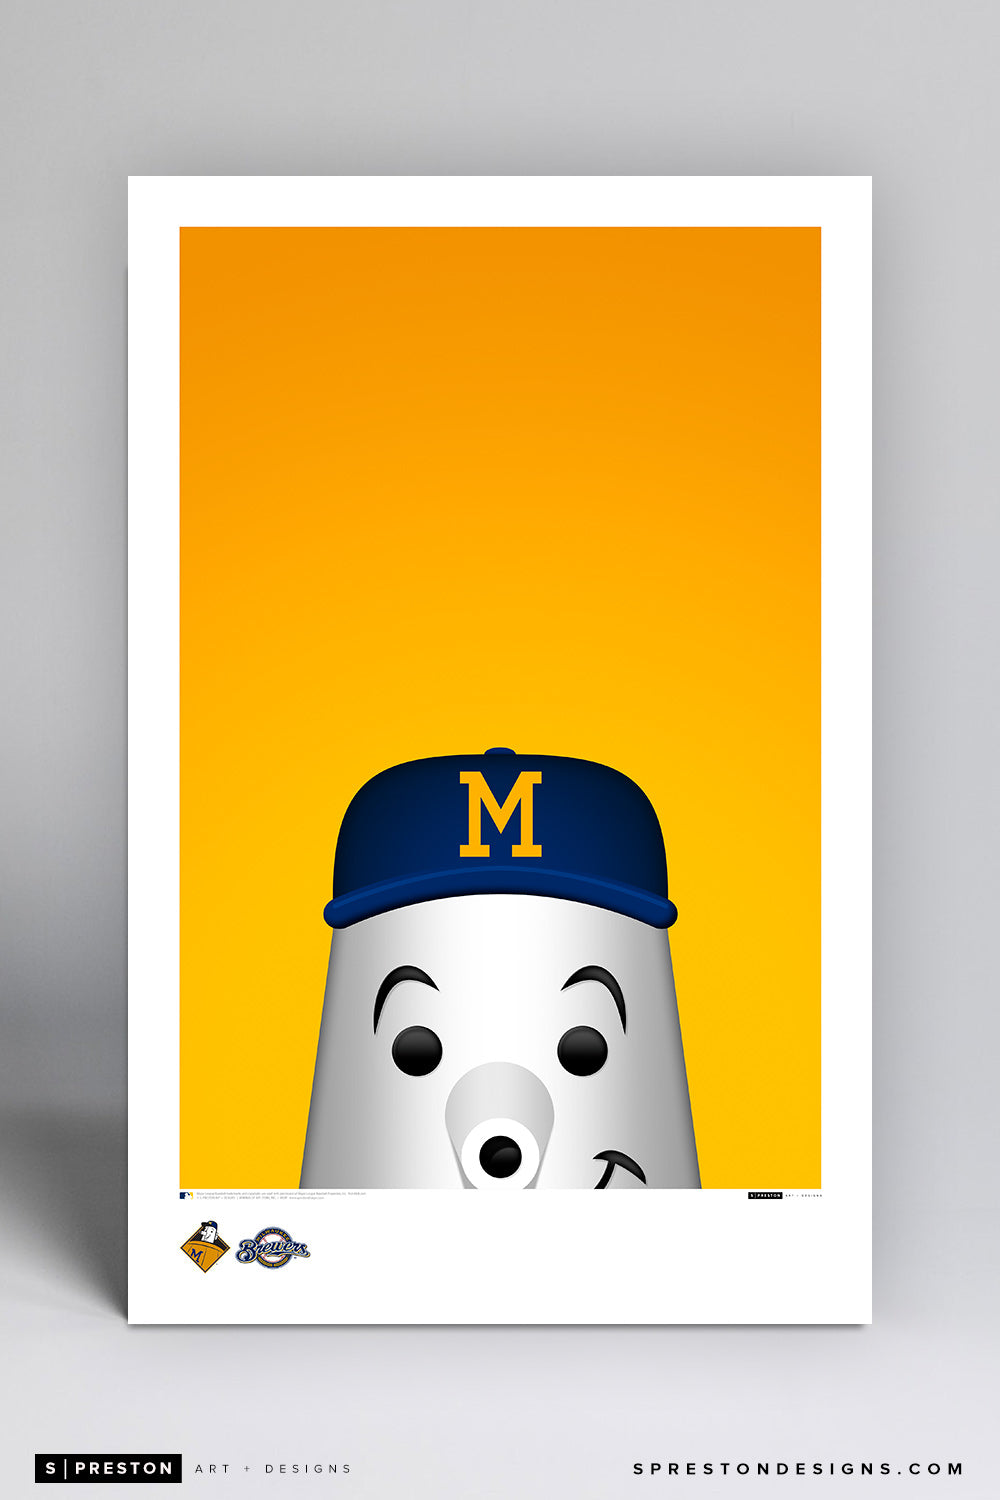 Minimalist Barrelman Art Poster Art Poster - Milwaukee Brewers - S. Preston Art + Designs